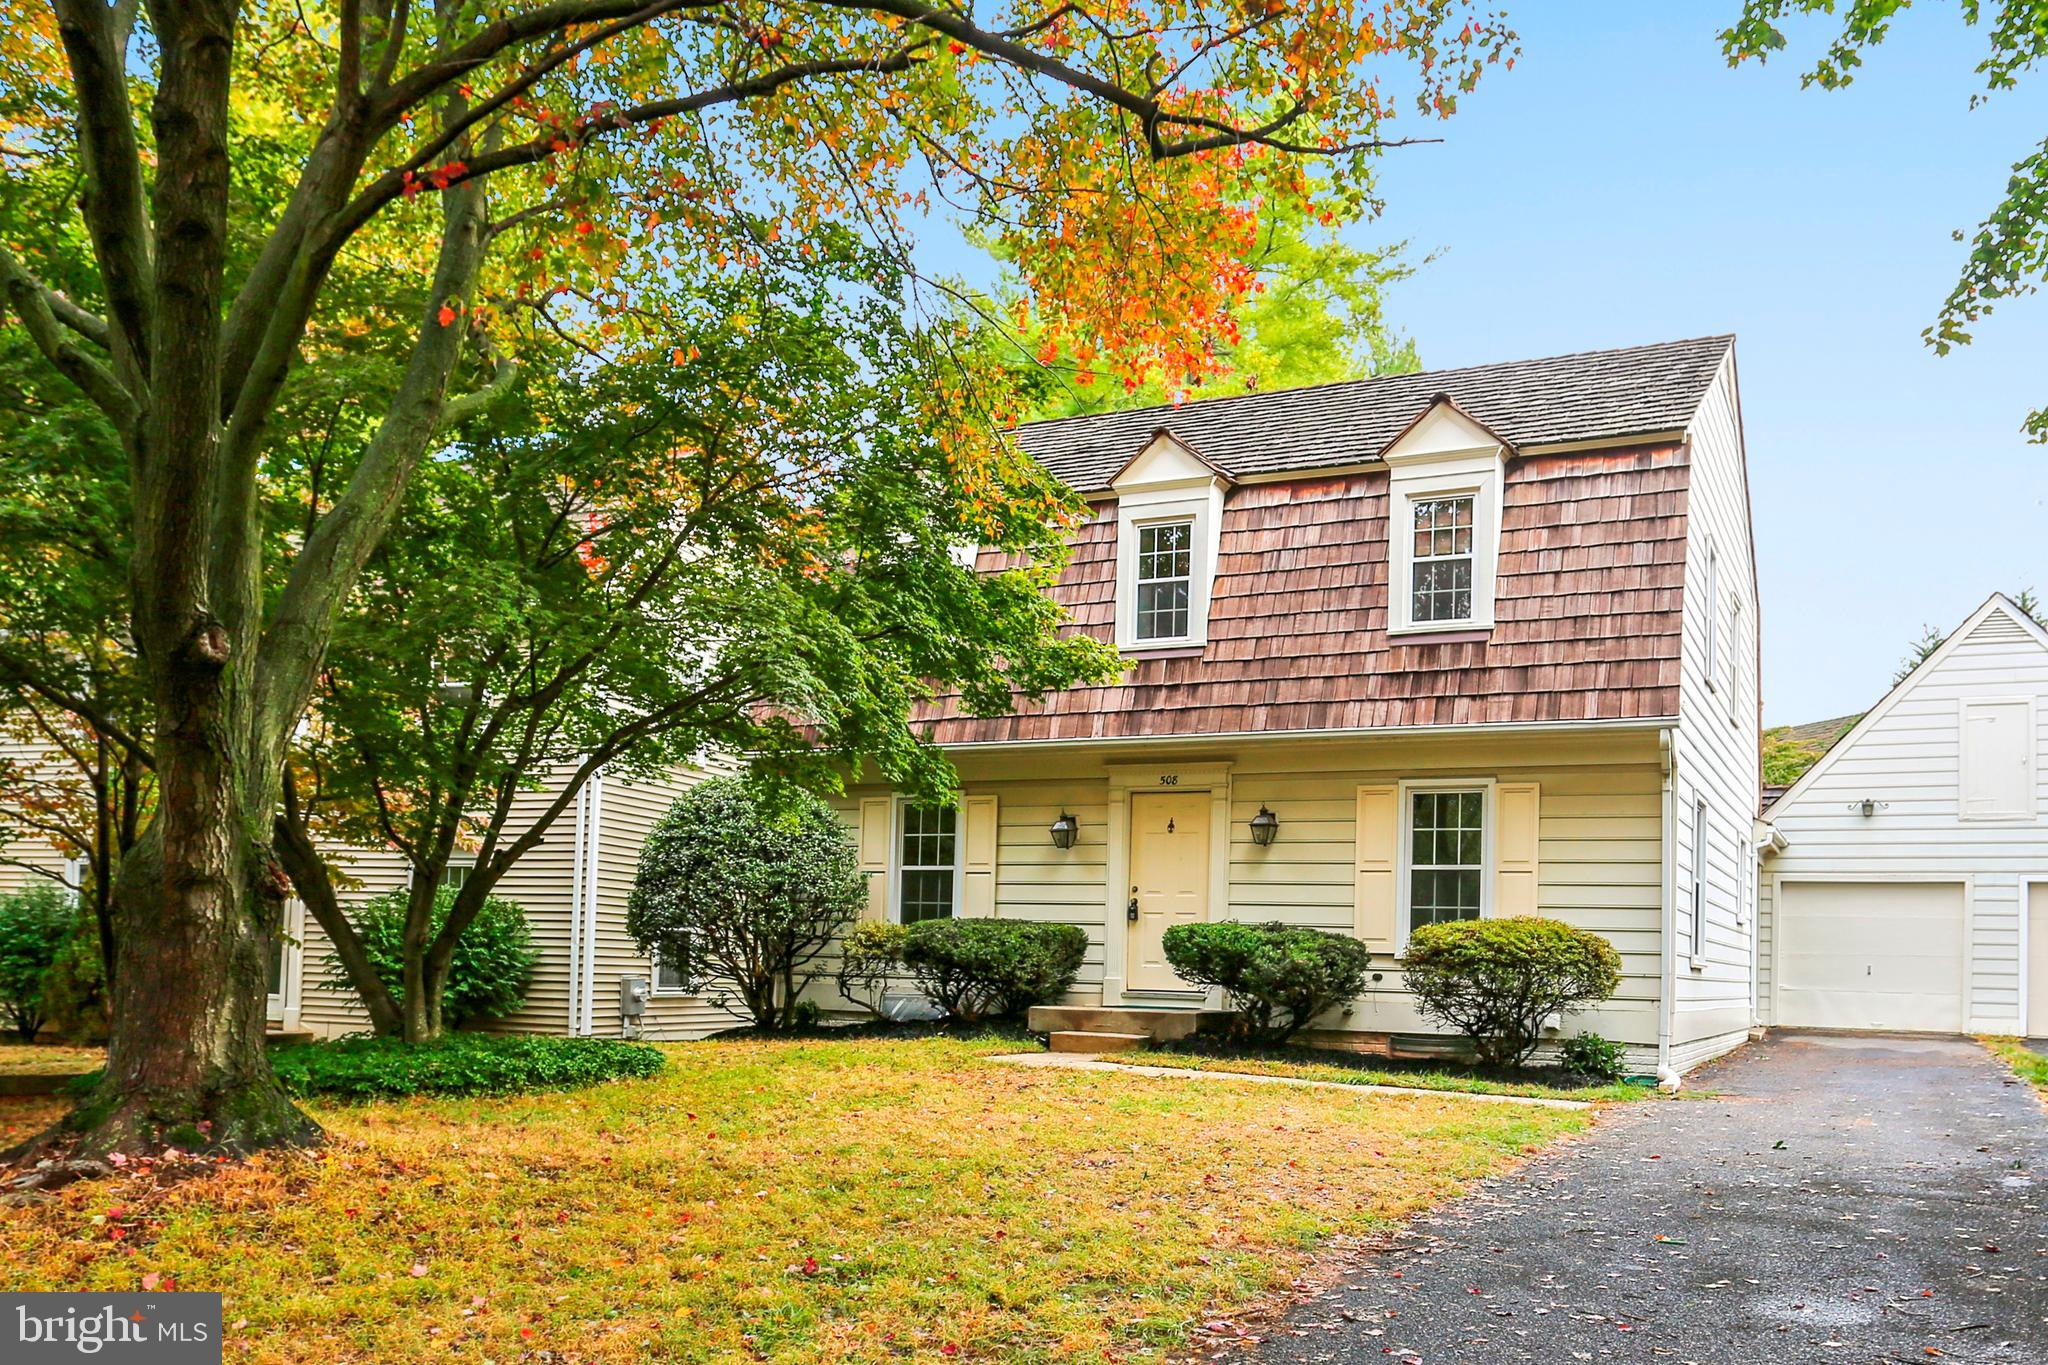 508 SAYBROOKE VIEW Dr, Gaithersburg, MD, 20877